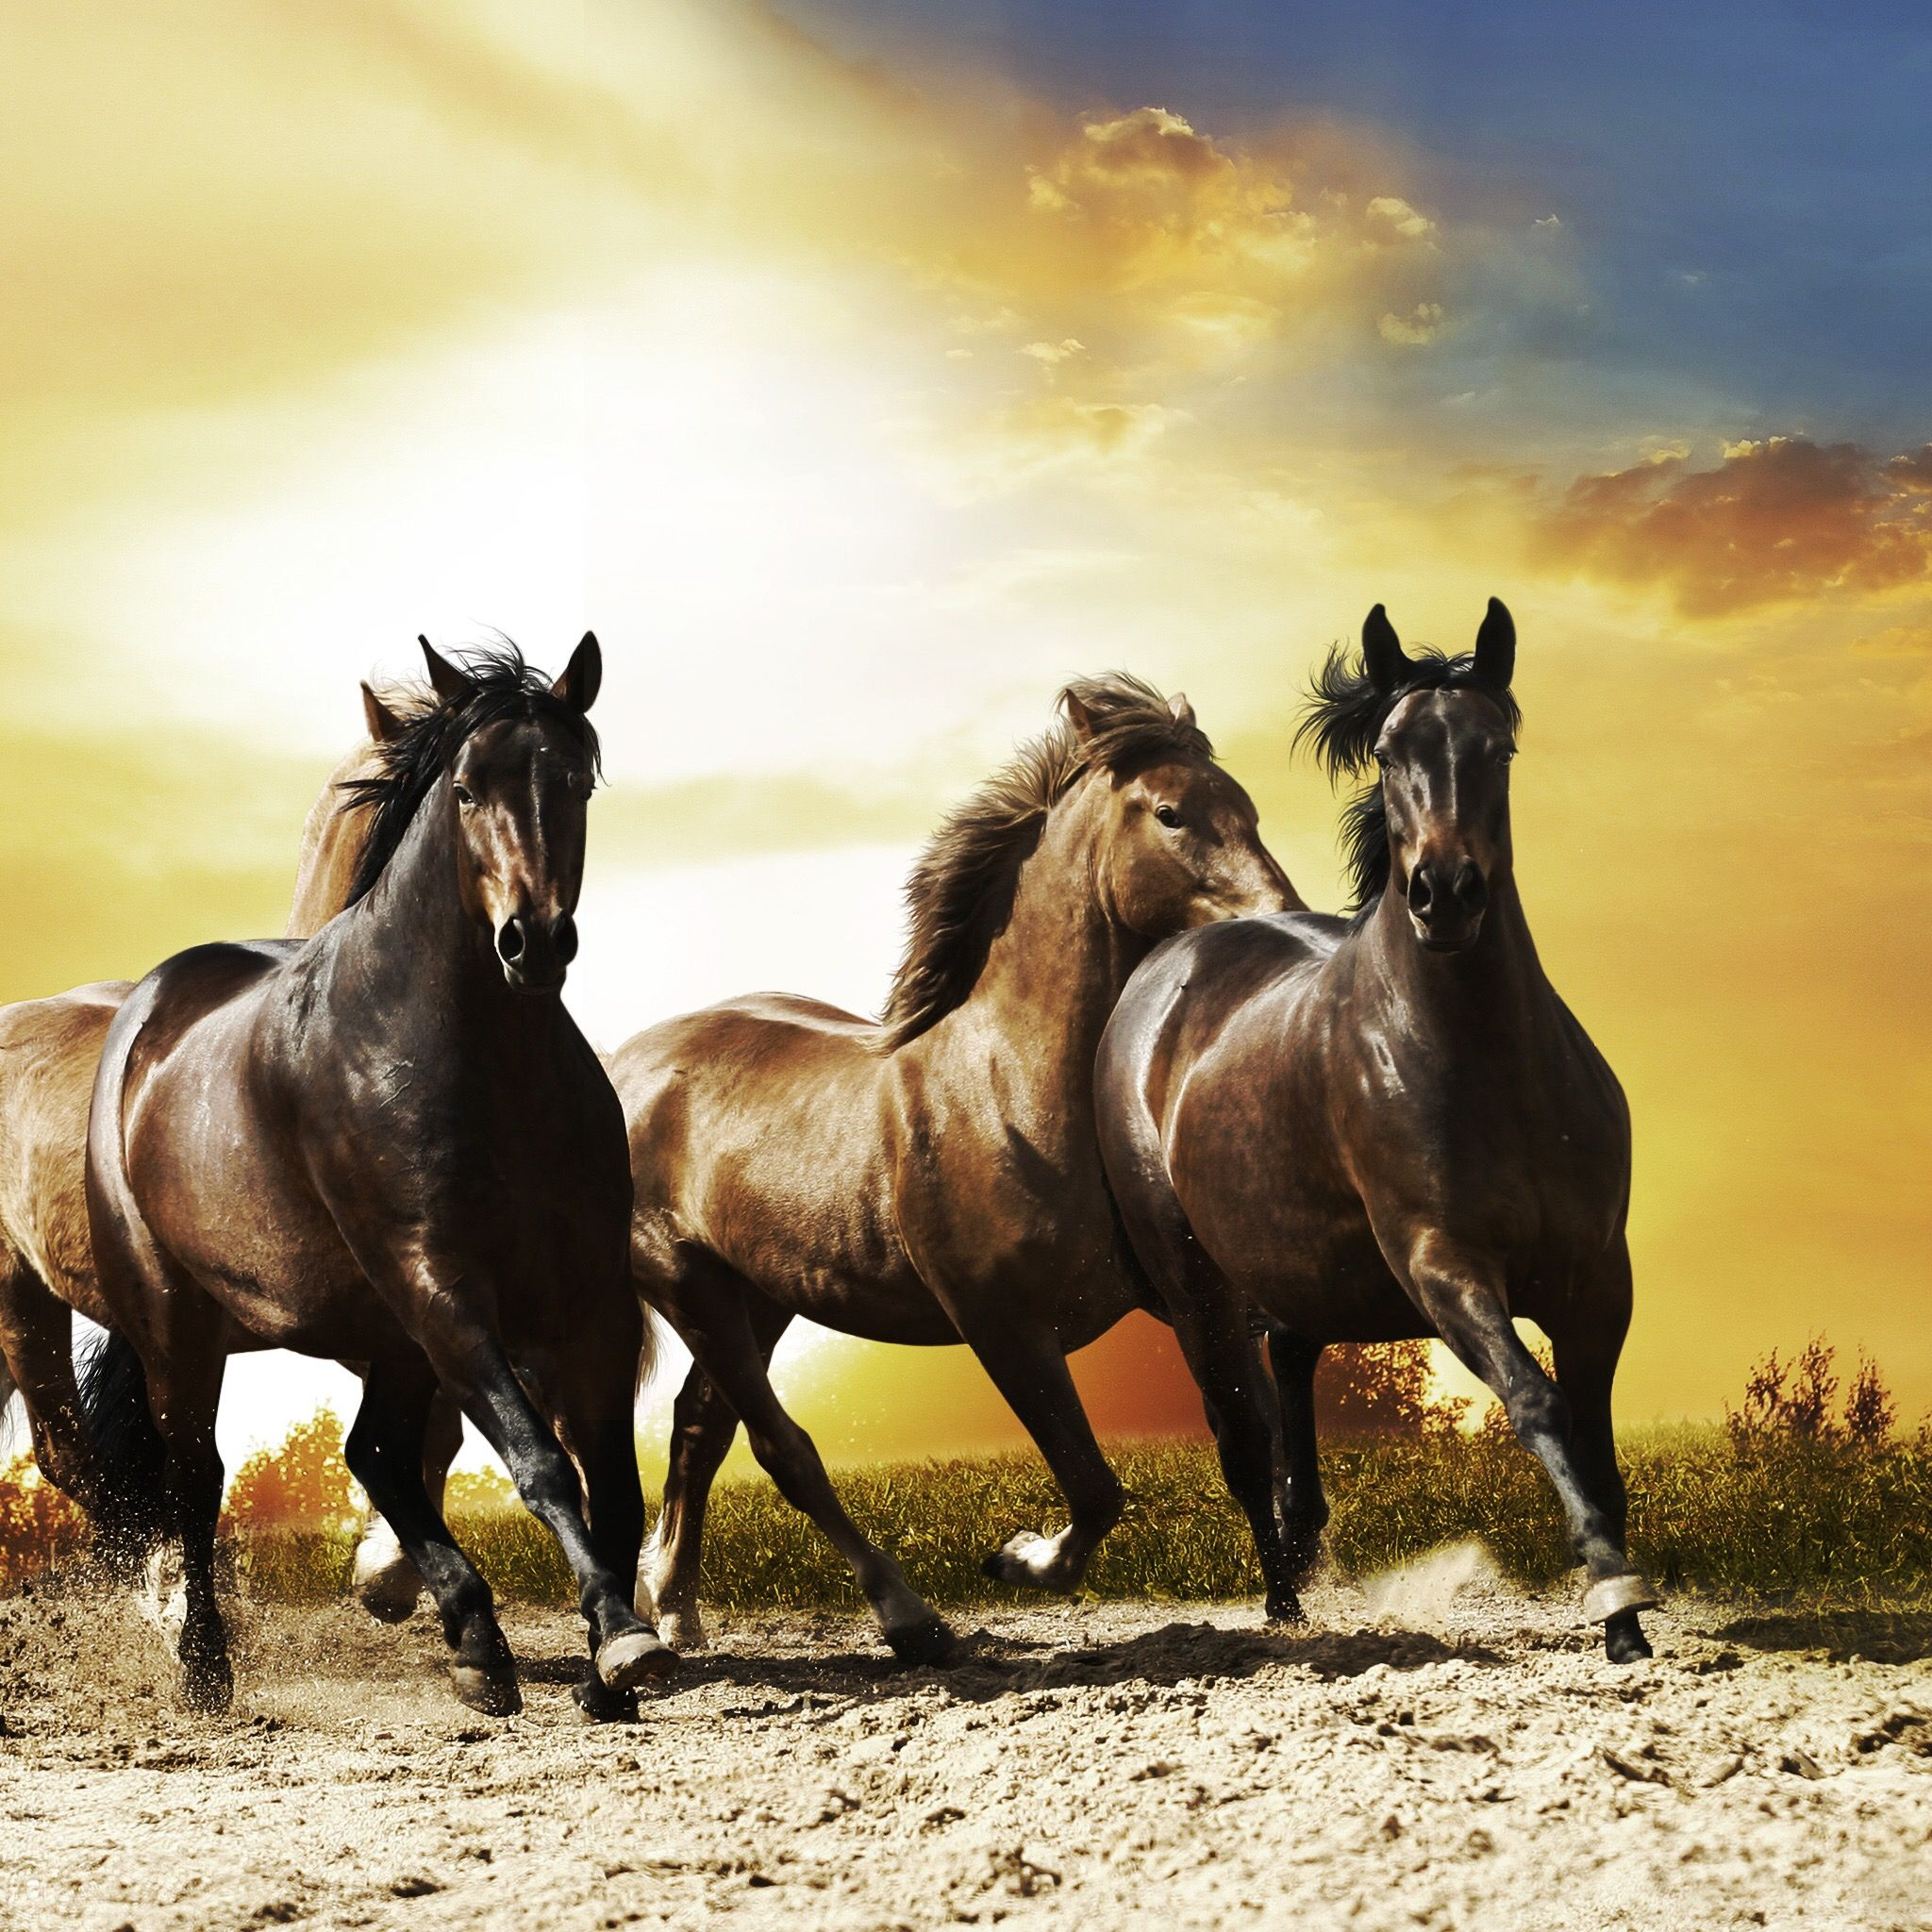 Wonderful Wallpaper Horse National Geographic - c64bdc4783427228427d65275cb9f712  Best Photo Reference_355749.jpg